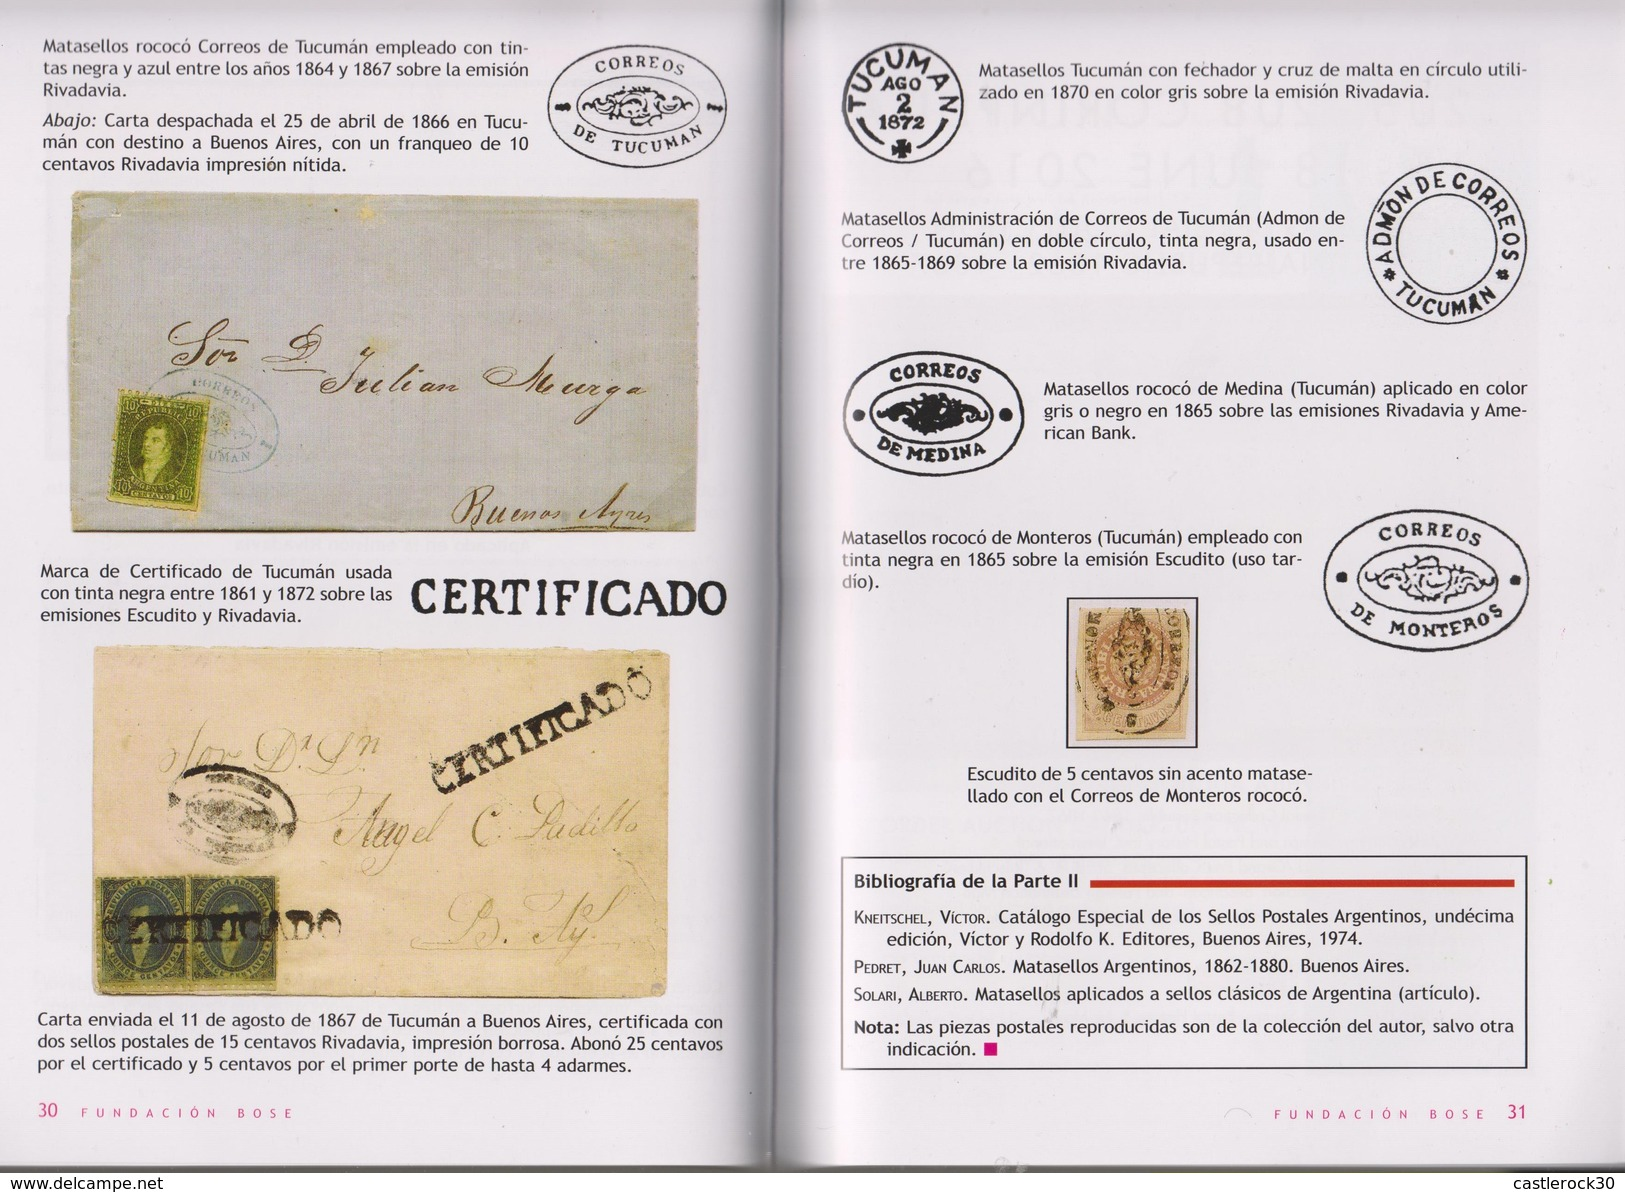 RO) 2016 ARGENTINA, BOOK-MAGAZINE CLASSIC STAMPS AND CANCELLATIONS FUNDACION BOSE  N°19 OF MAYO 2016, WITH LOTS - Books, Magazines, Comics